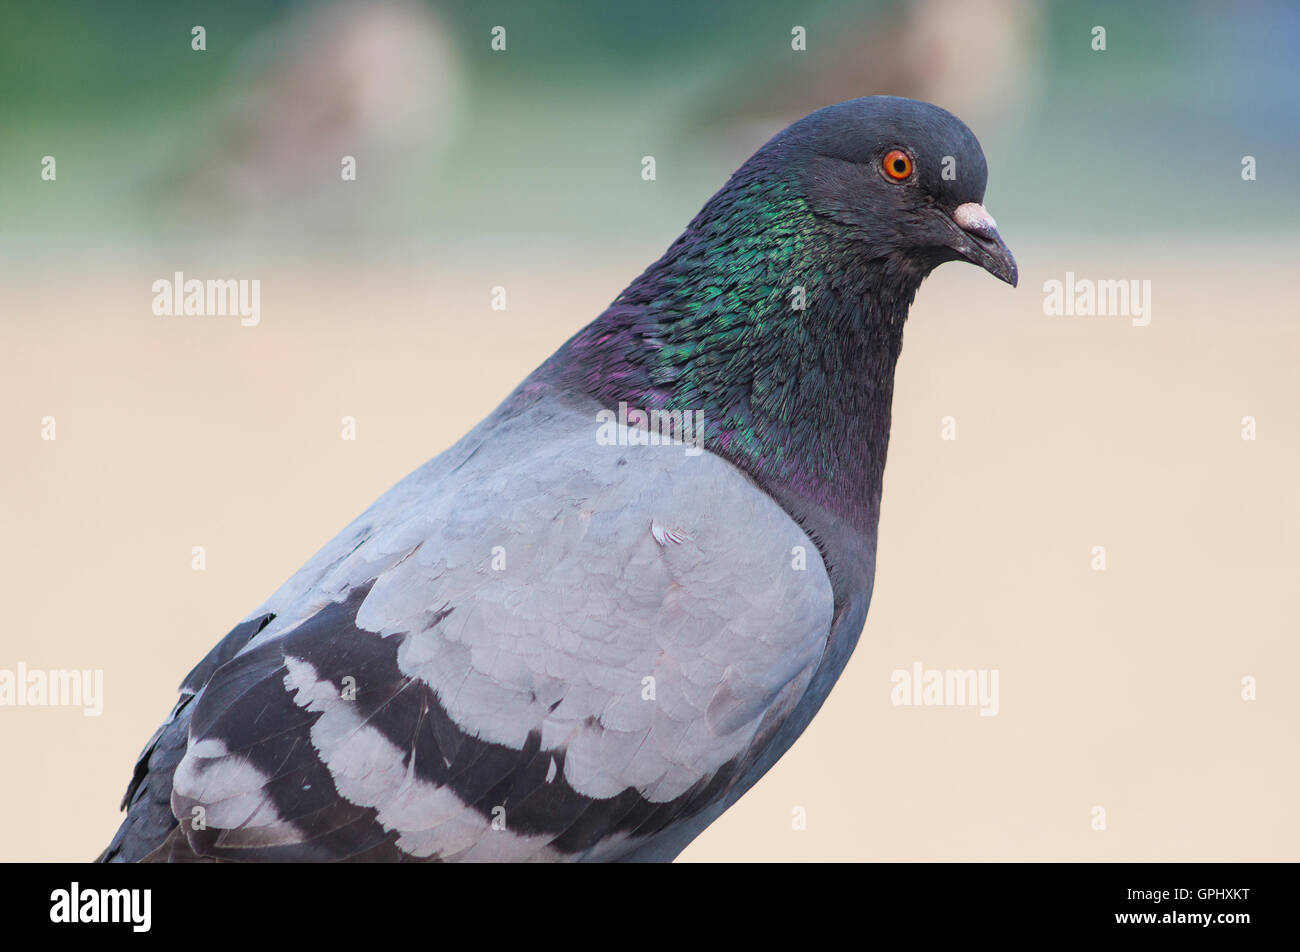 A portrait of a pigeon with beautiful hackle feathers. - Stock Image